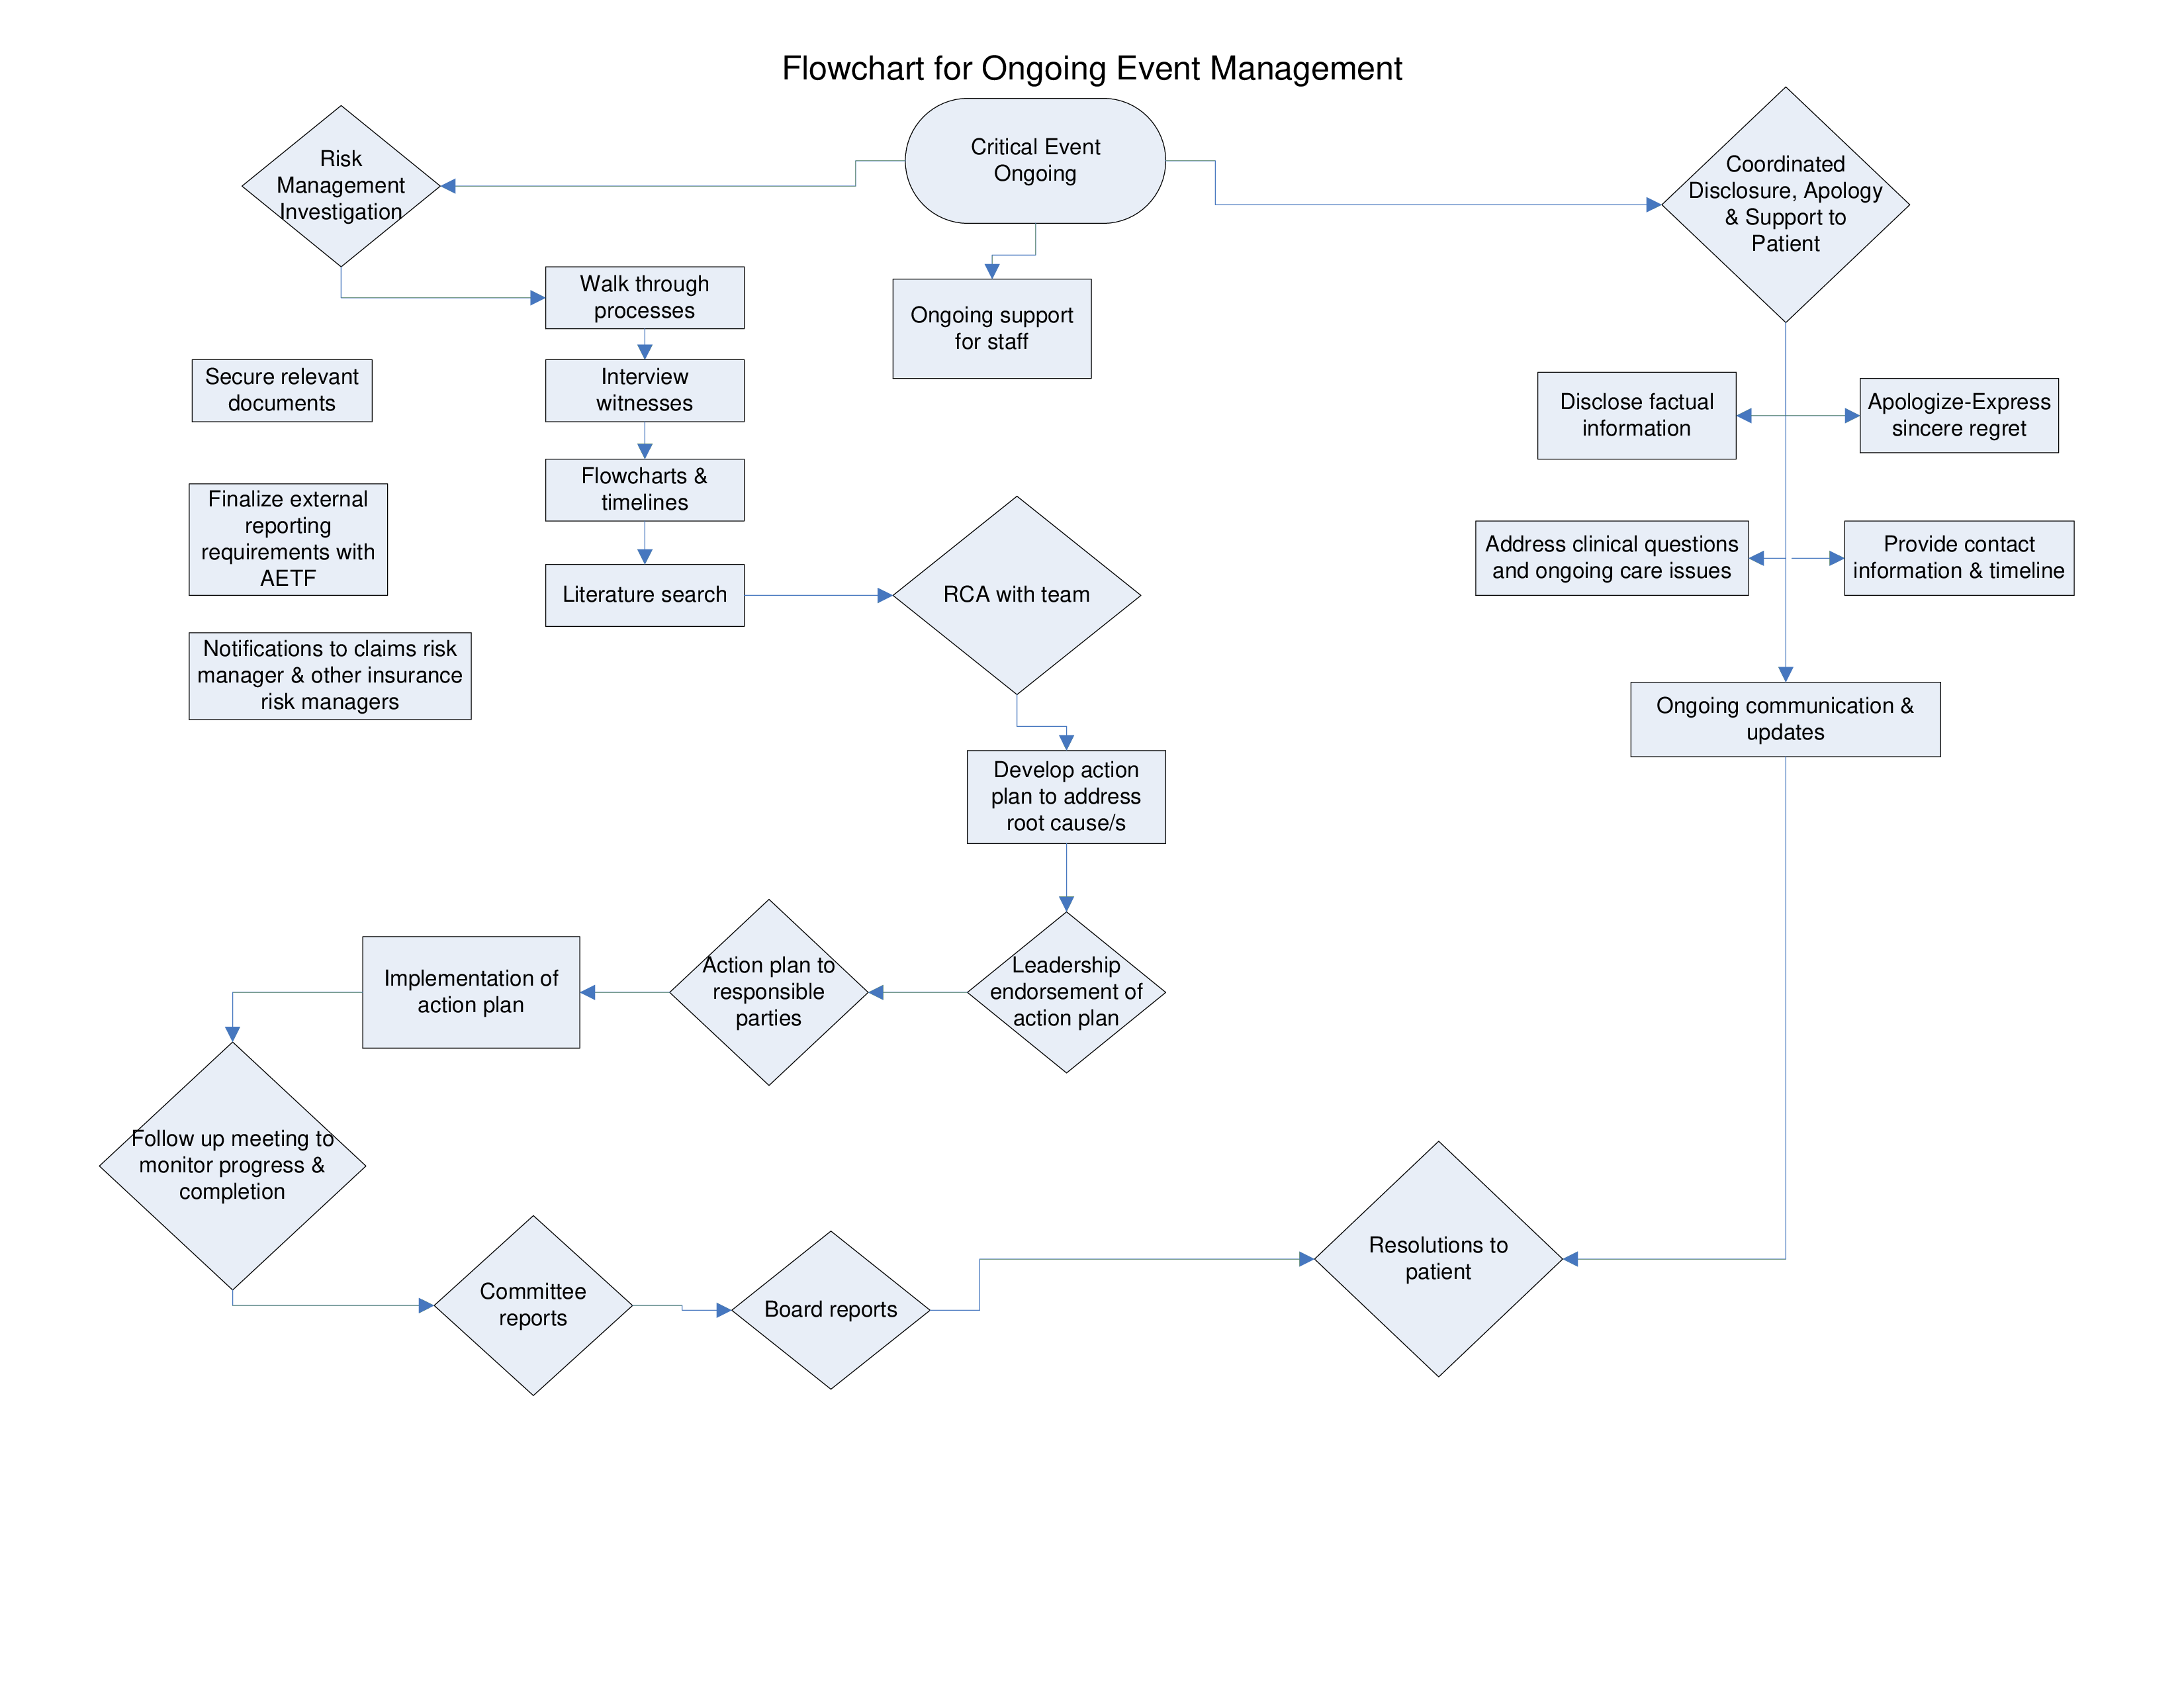 Event Organizing Flow Chart How To Create An Event Organizing Flow Chart Download This Event Organizing Flow Chart Flow Chart Template Templates Flow Chart